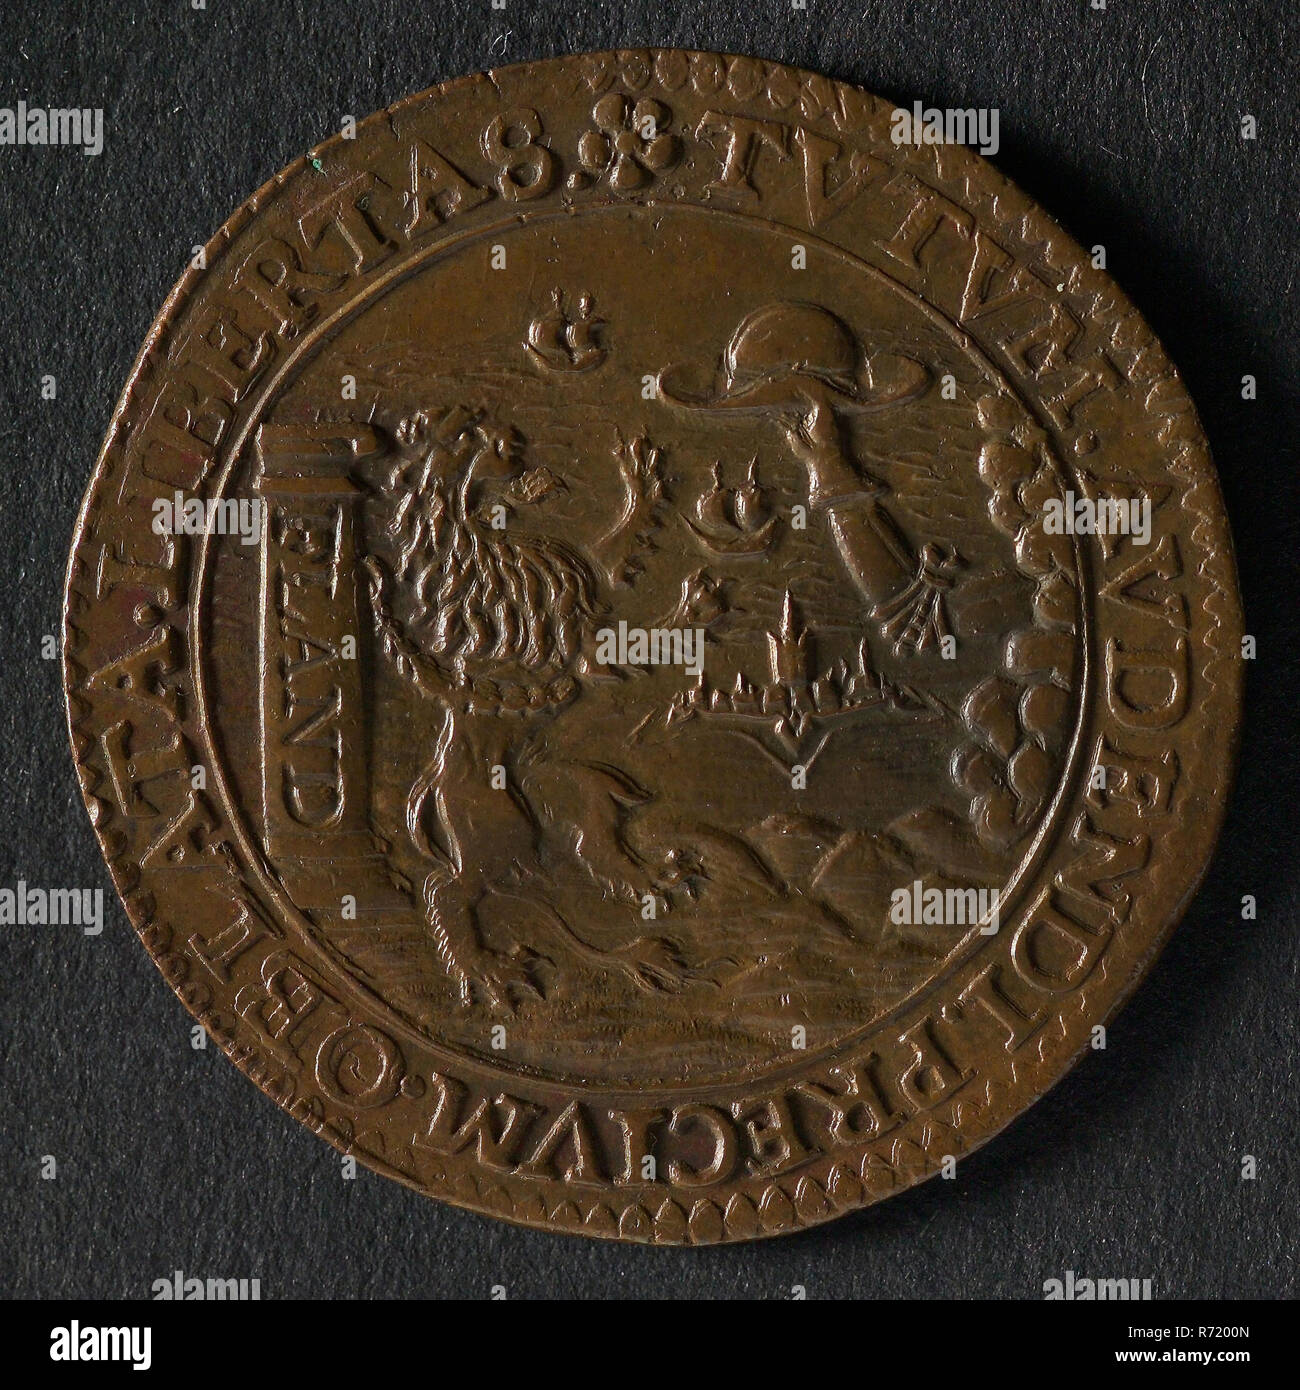 Medal on the peace proposals and the battle at Nieuwpoort, jeton utility medal medal exchange buyer, Flemish lion bound to column on which FLAND refuses to offer him freedom hat omschrift: TVTVM. AVDENDI. PRECIVM. OBLATA. LIBERTAS (the offered freedom is safe reward to take the plunge) Oldenbarnevelt - Stock Image